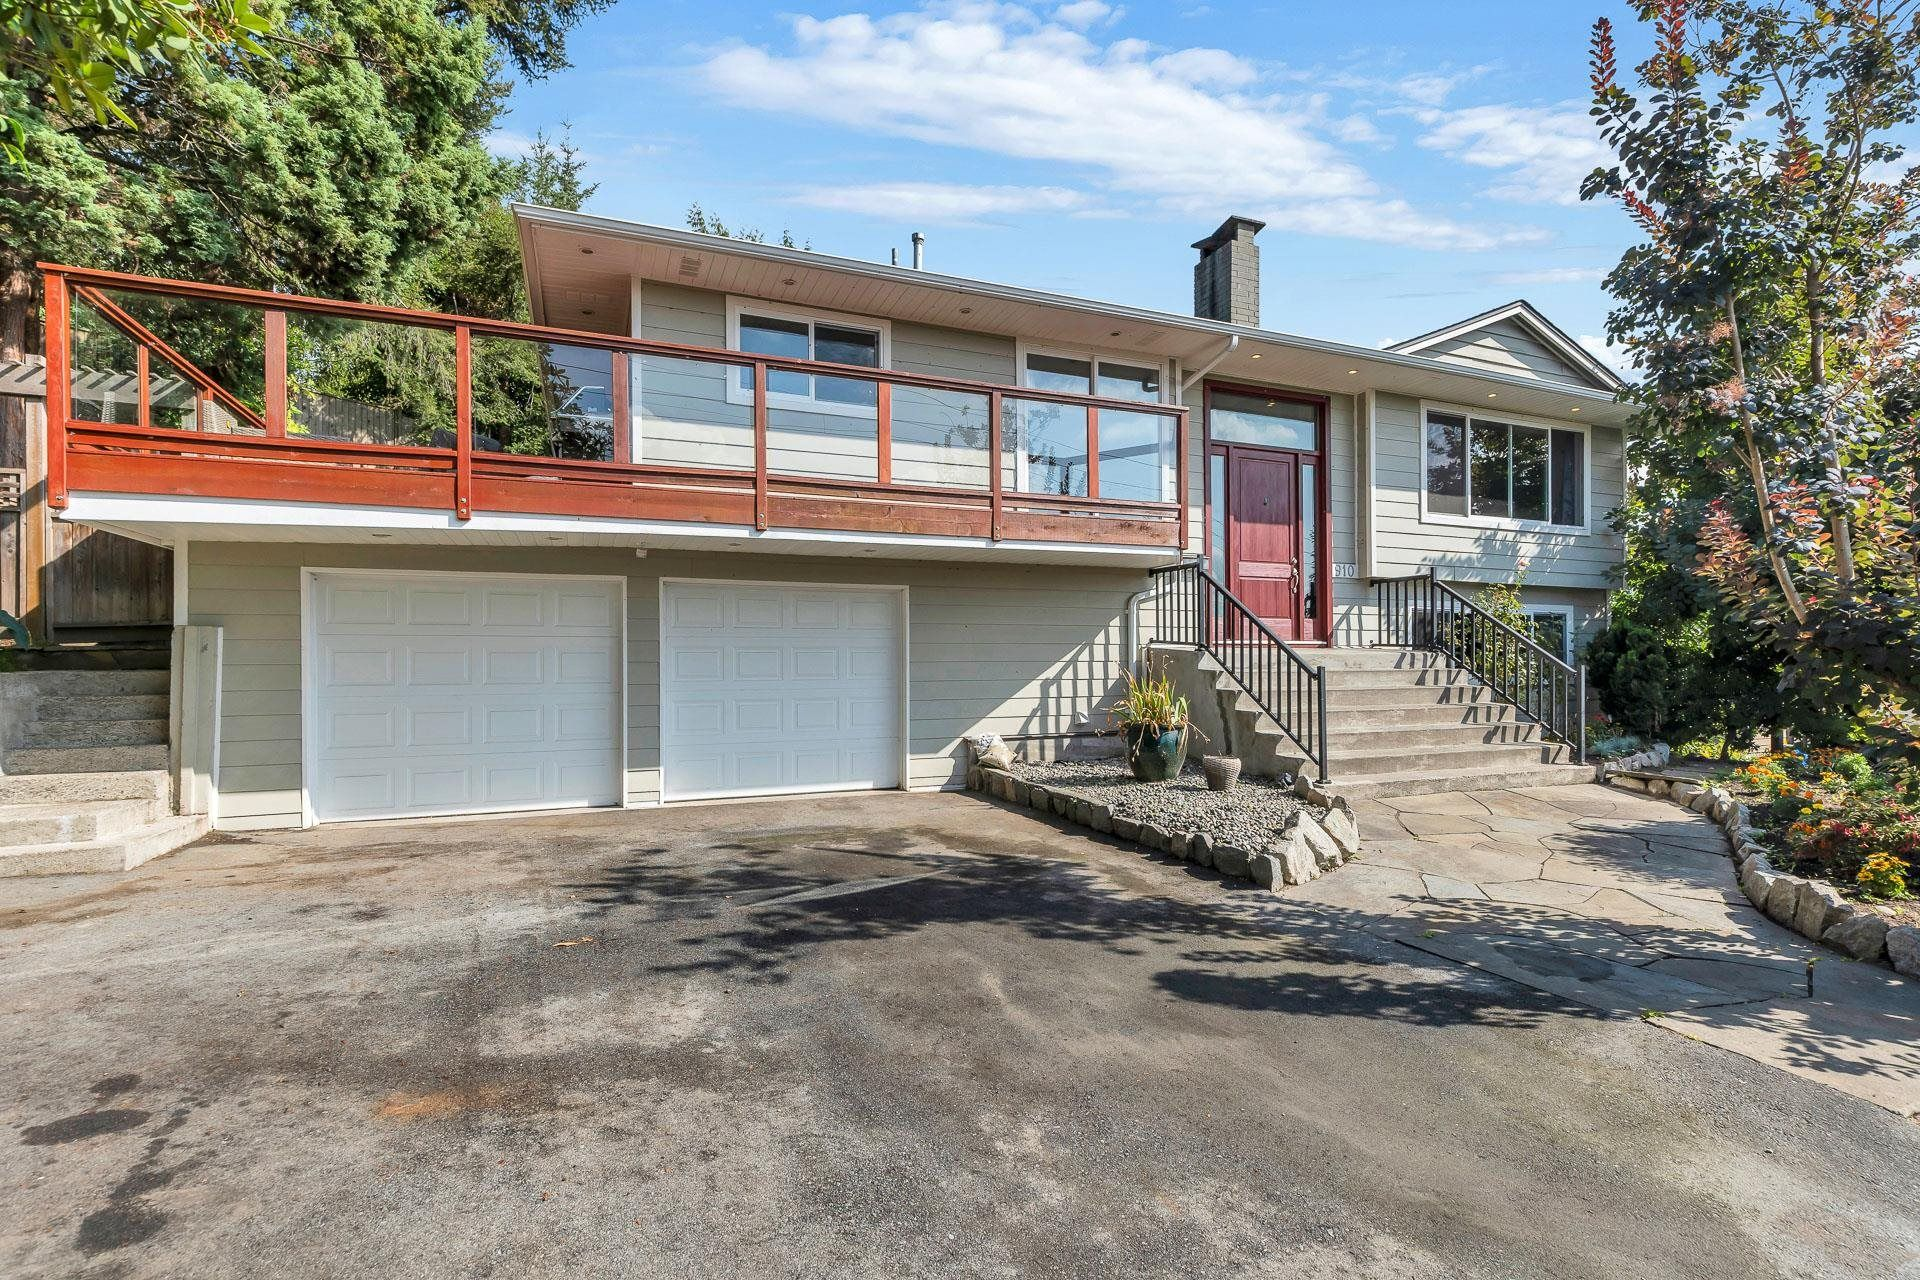 Main Photo: 910 E 4TH Street in North Vancouver: Calverhall House for sale : MLS®# R2611296